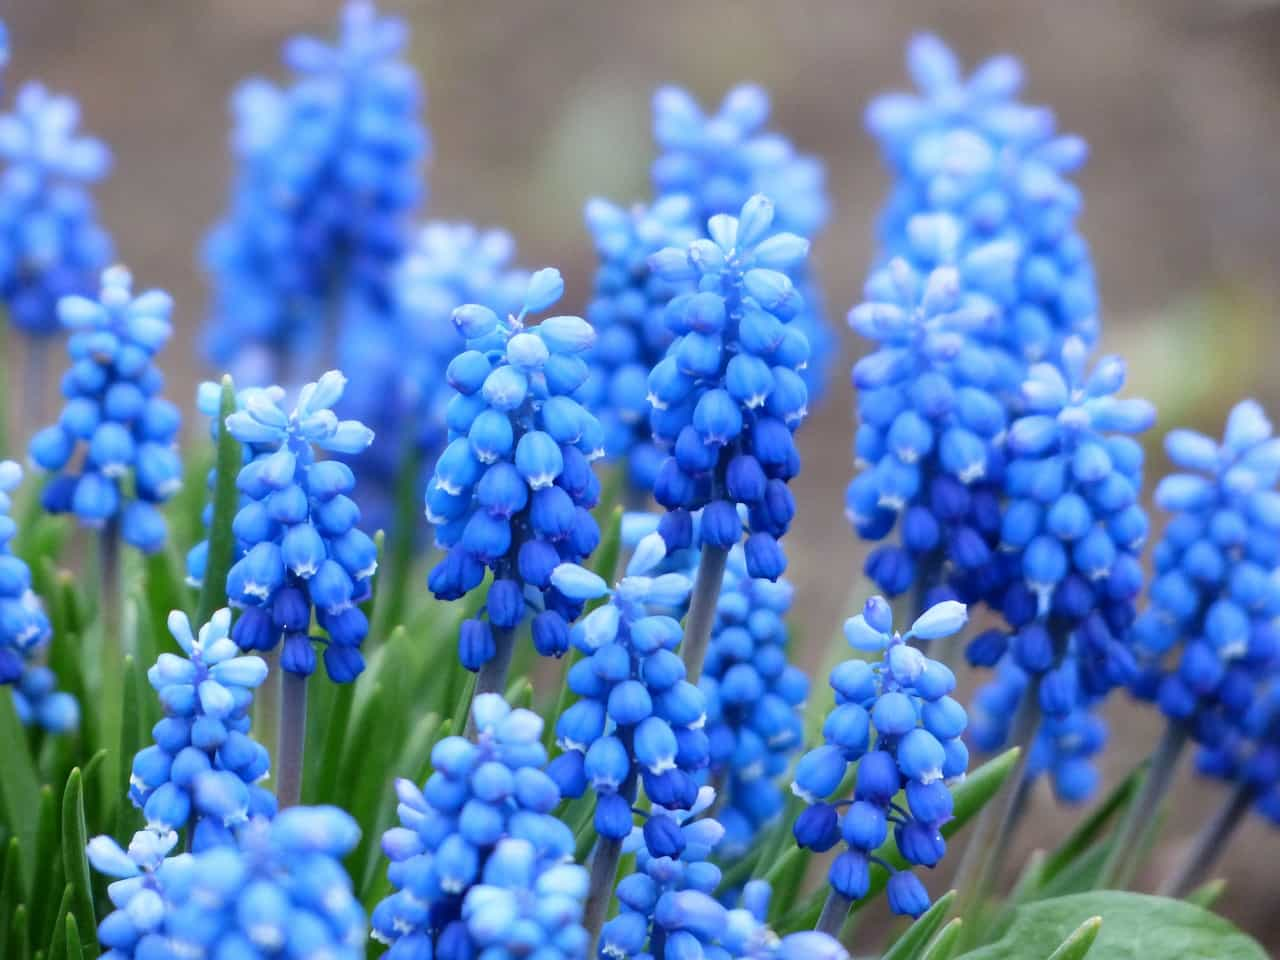 Muscari - Common Grape Hyacinth